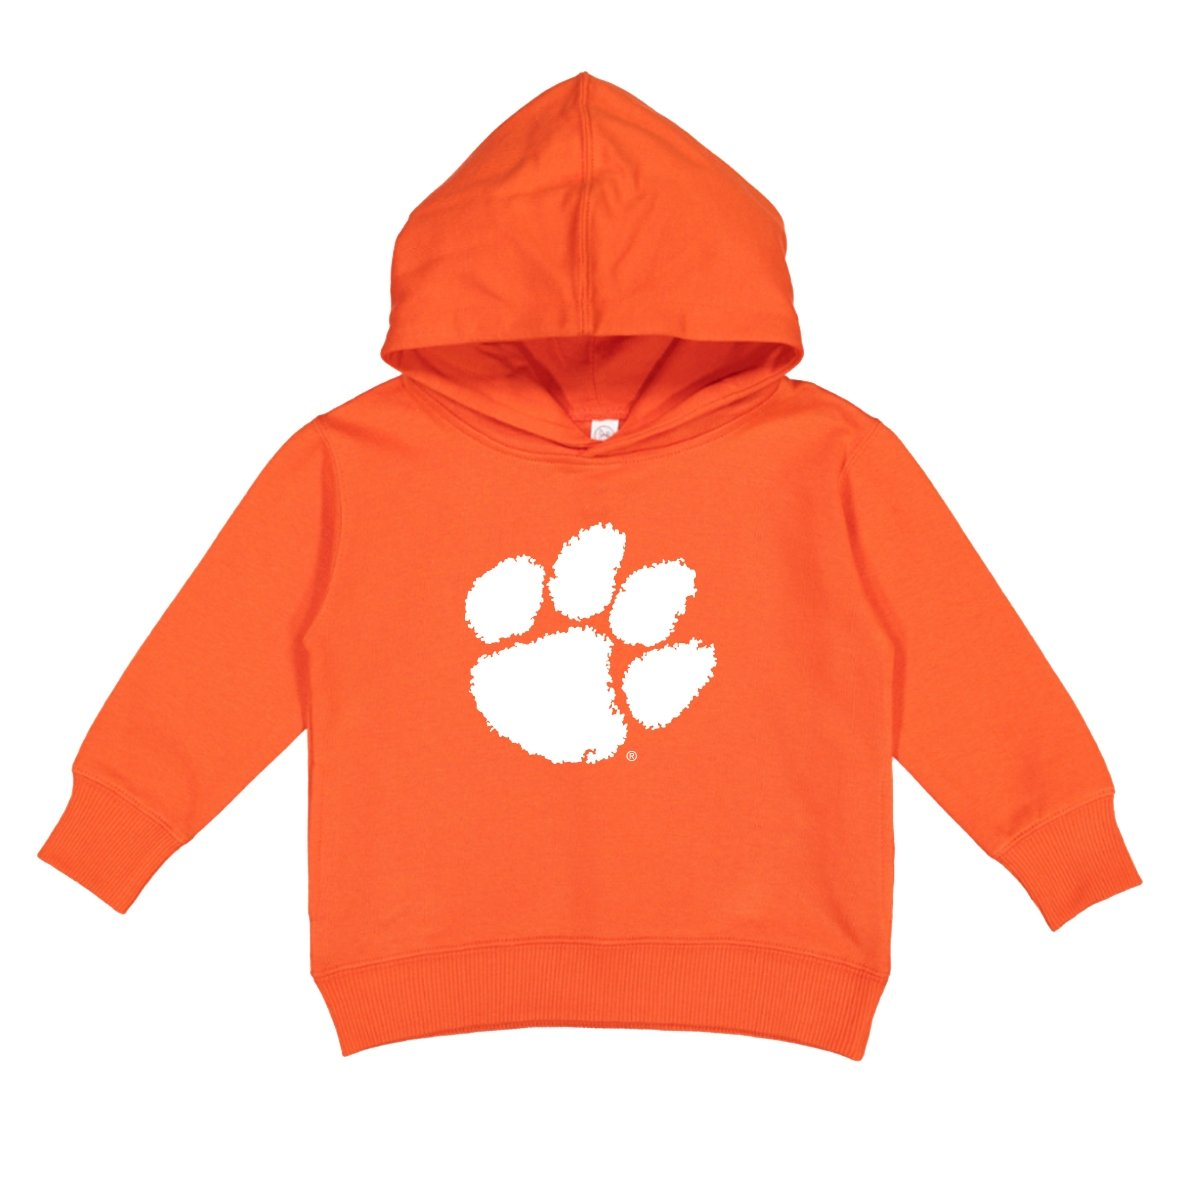 Toddler Hoodie With White Paw - Mr. Knickerbocker